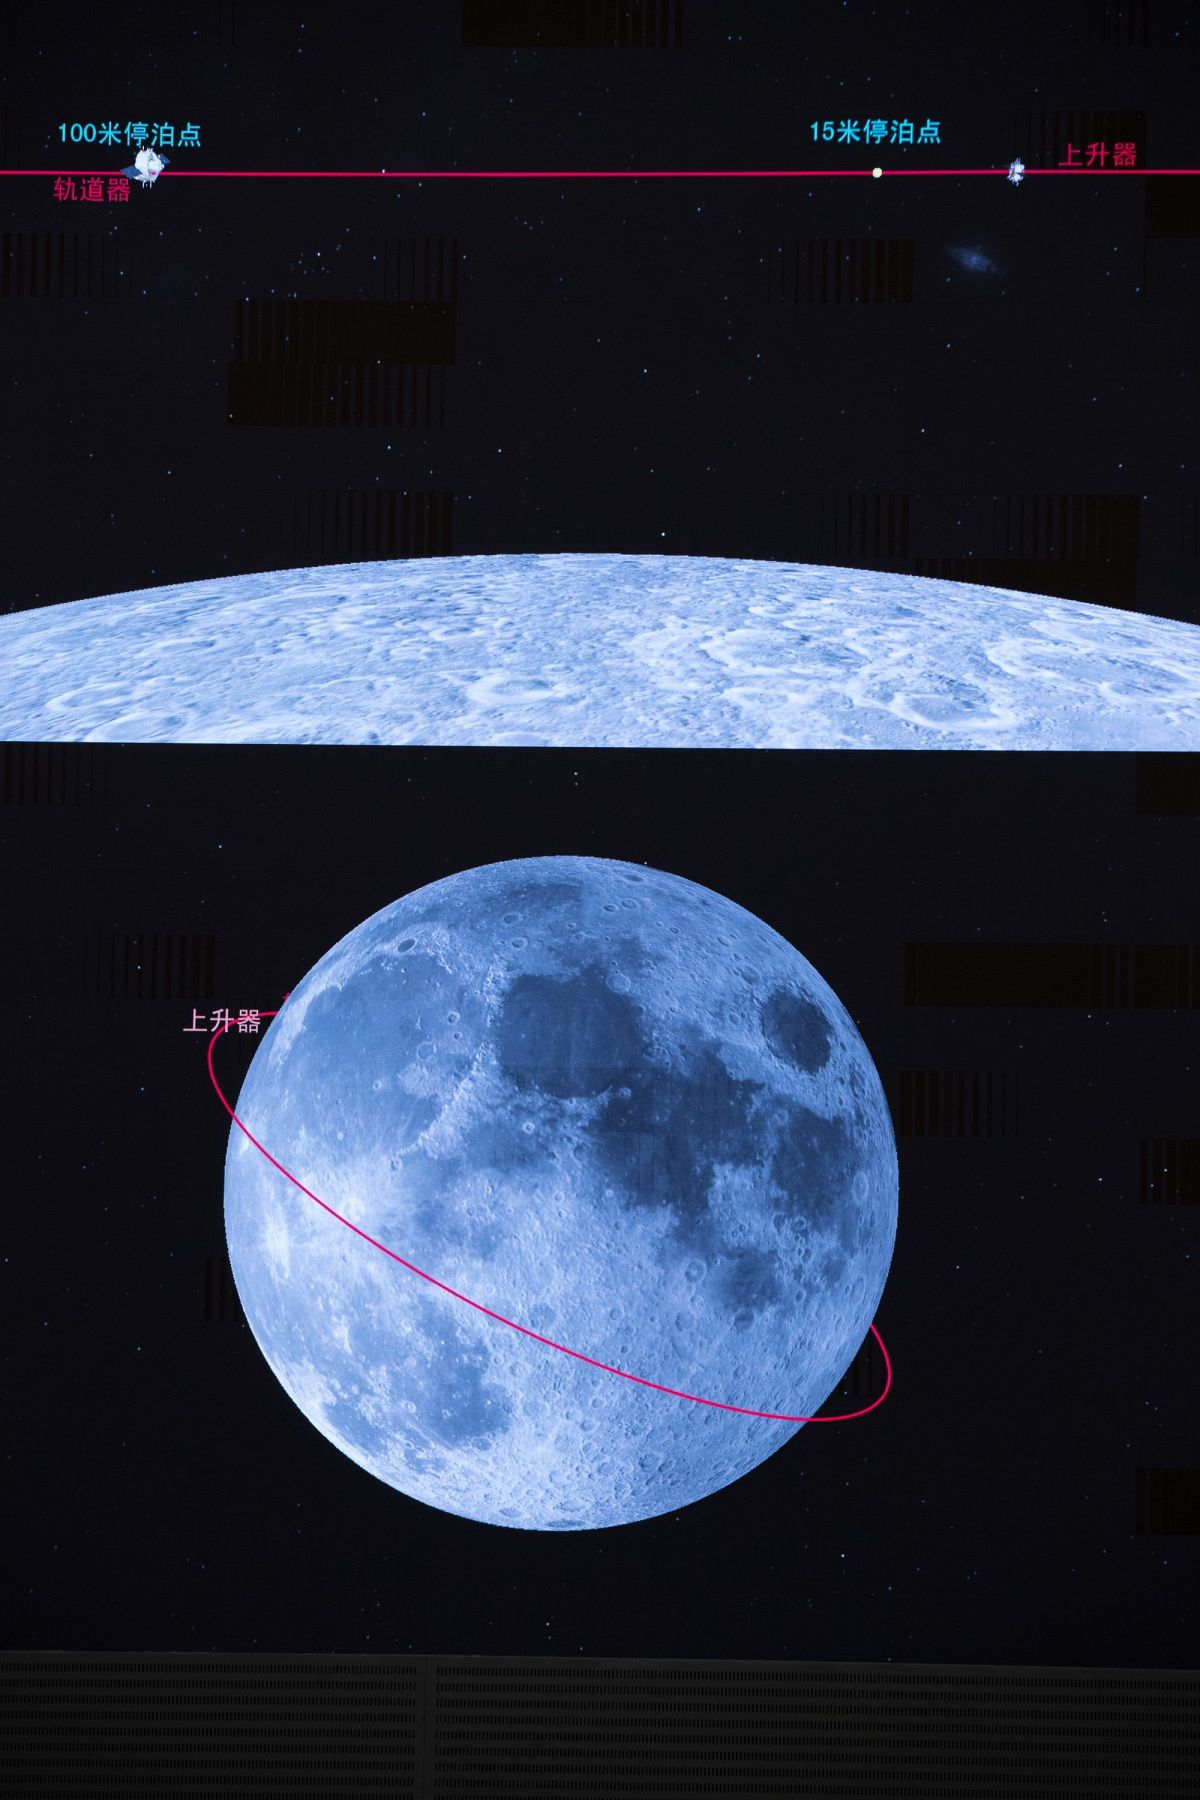 A screen image as parts of China's Chang'e-5 probe connected to launch its sample back towards Earth